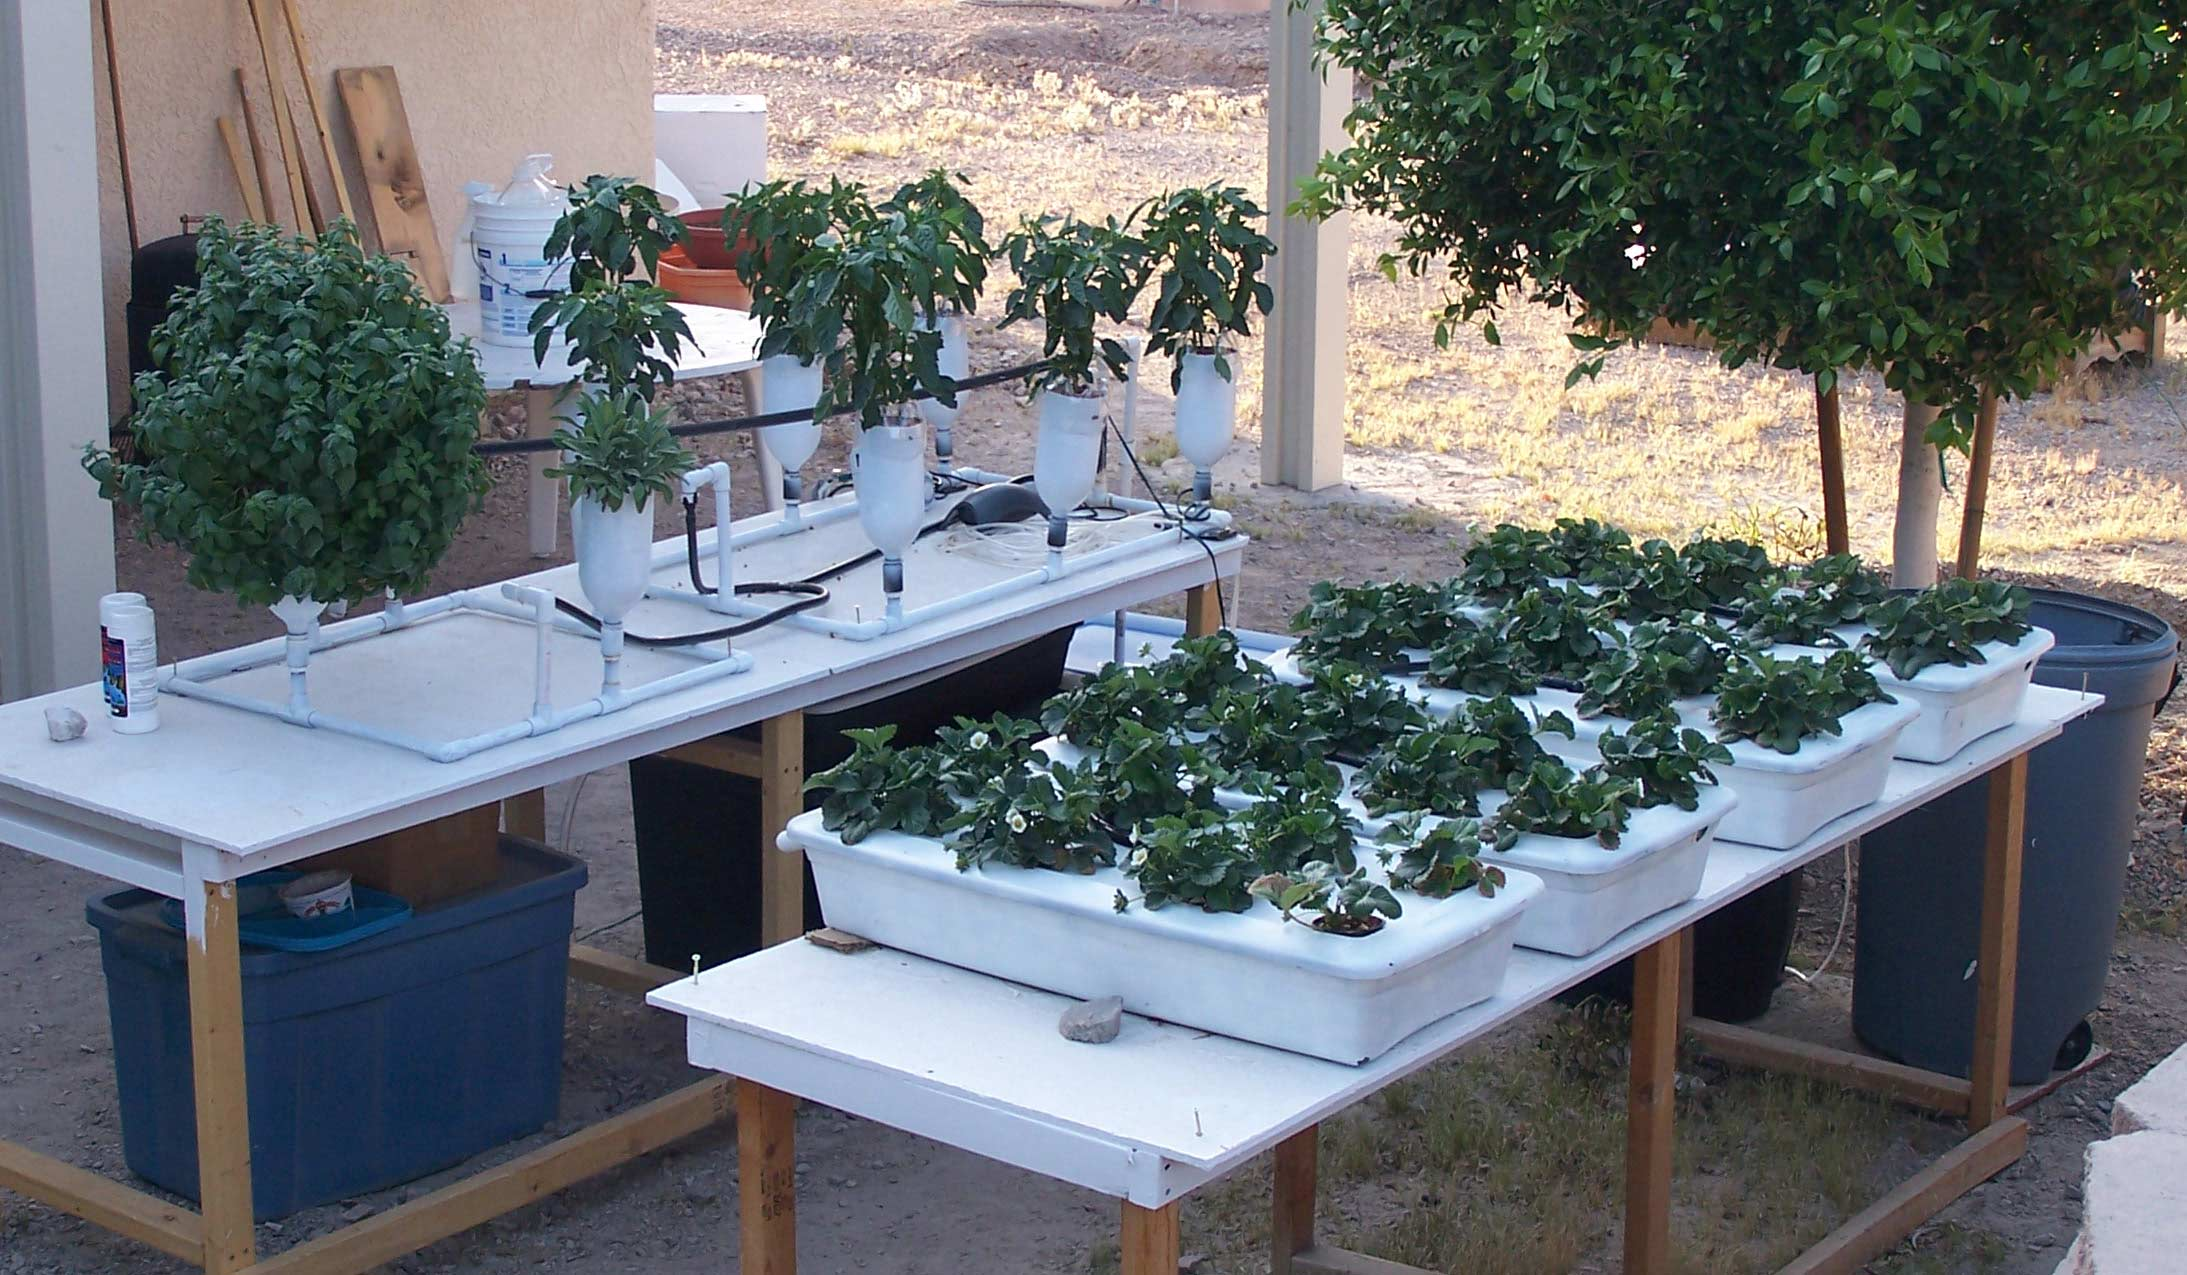 Hydroponic Flood Table Plants growing in home built hydroponic systems